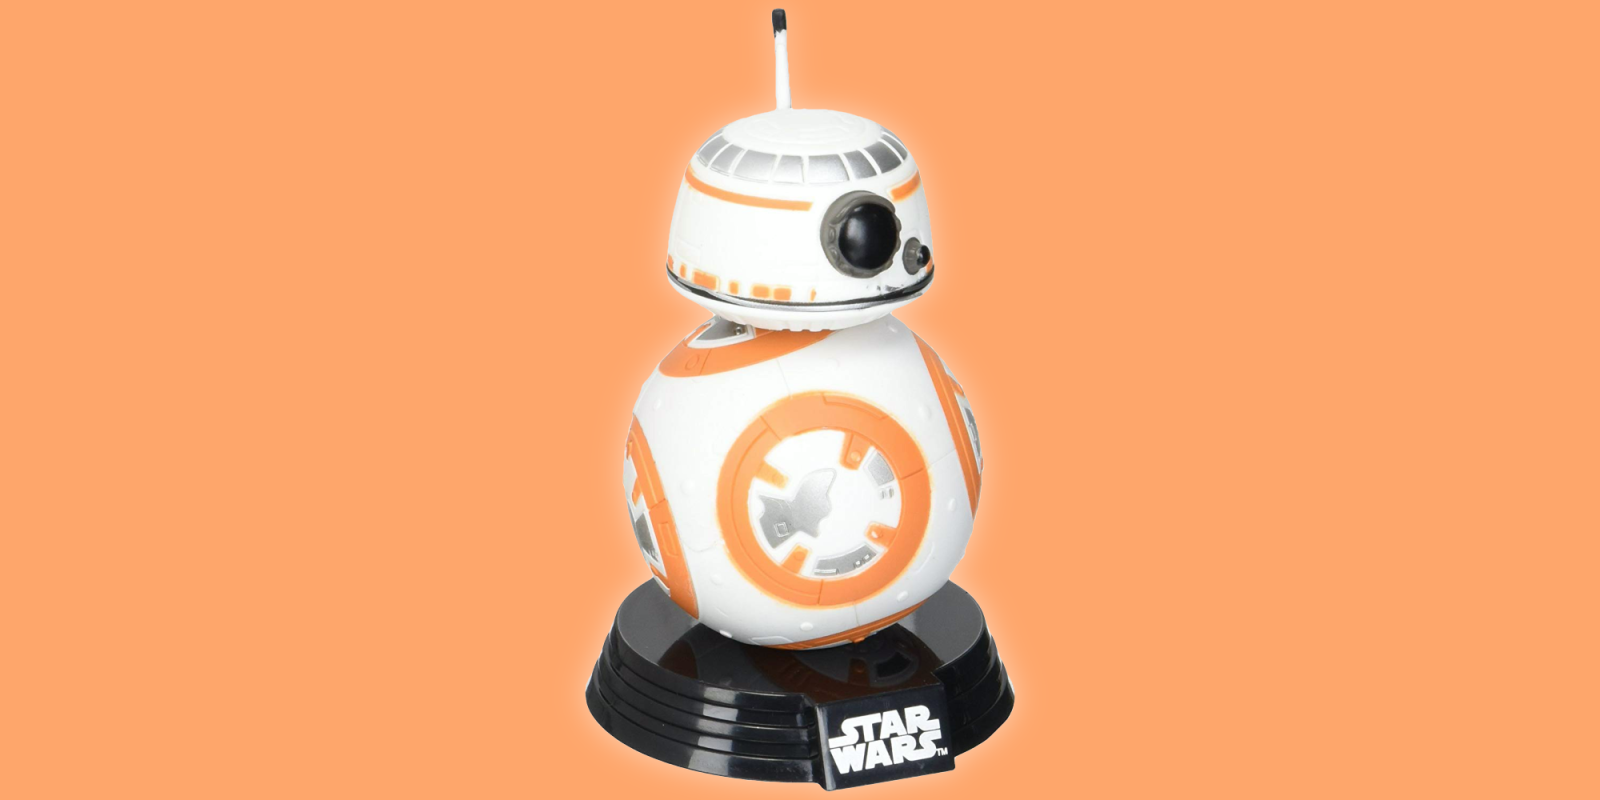 Every Star Wars fan should have Funko's BB-8 in their collection at just $5